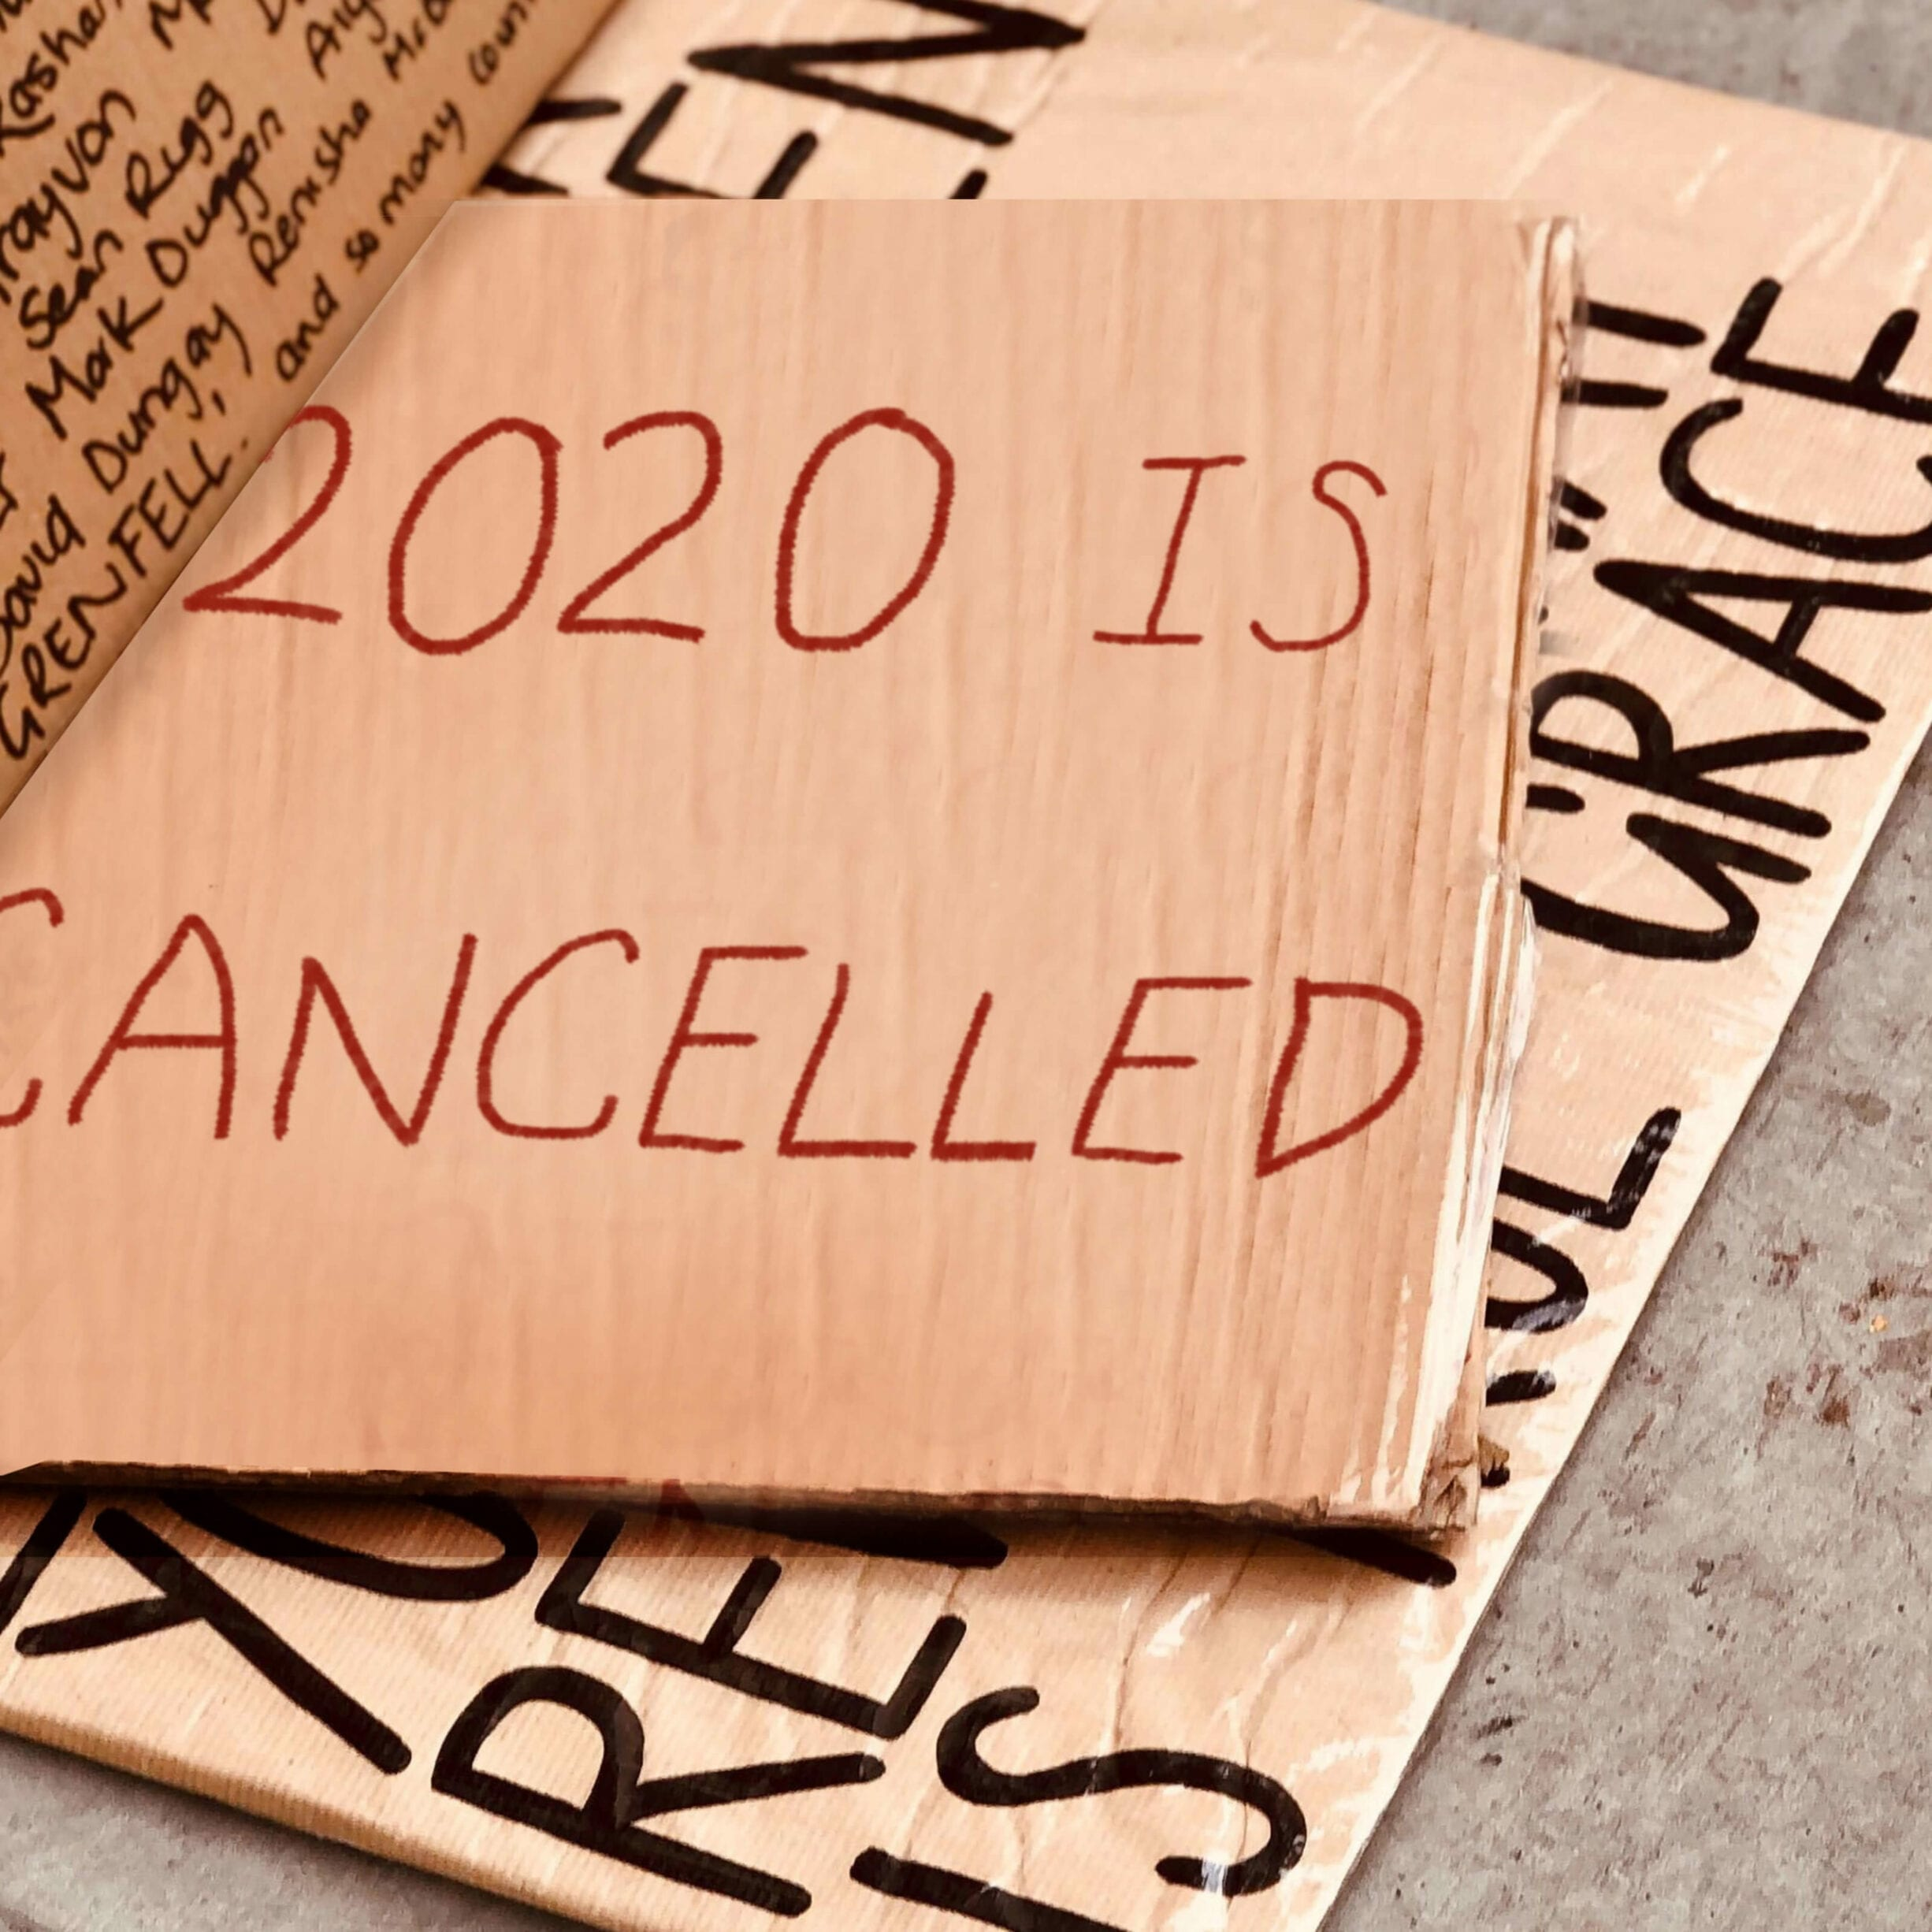 cardboard protest sign that reads 2020 is cancelled